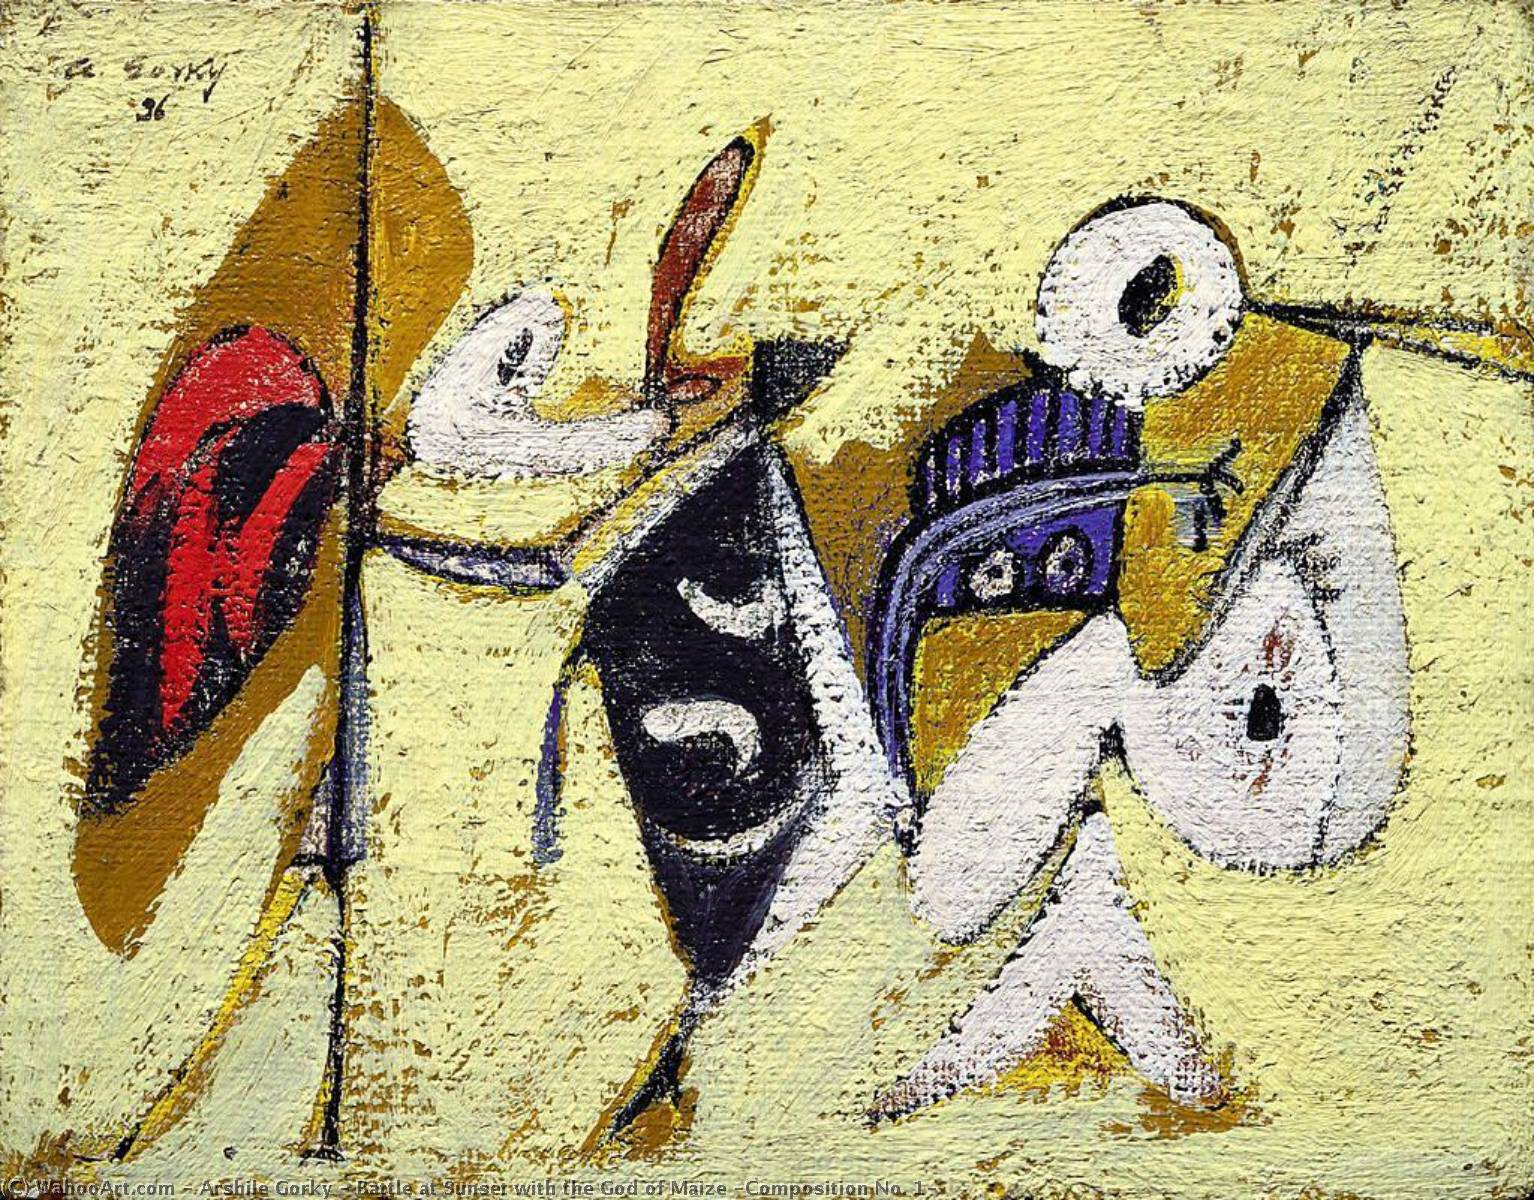 Battle at Sunset with the God of Maize (Composition No. 1), Oil On Canvas by Arshile Gorky (1904-1948, Turkey)